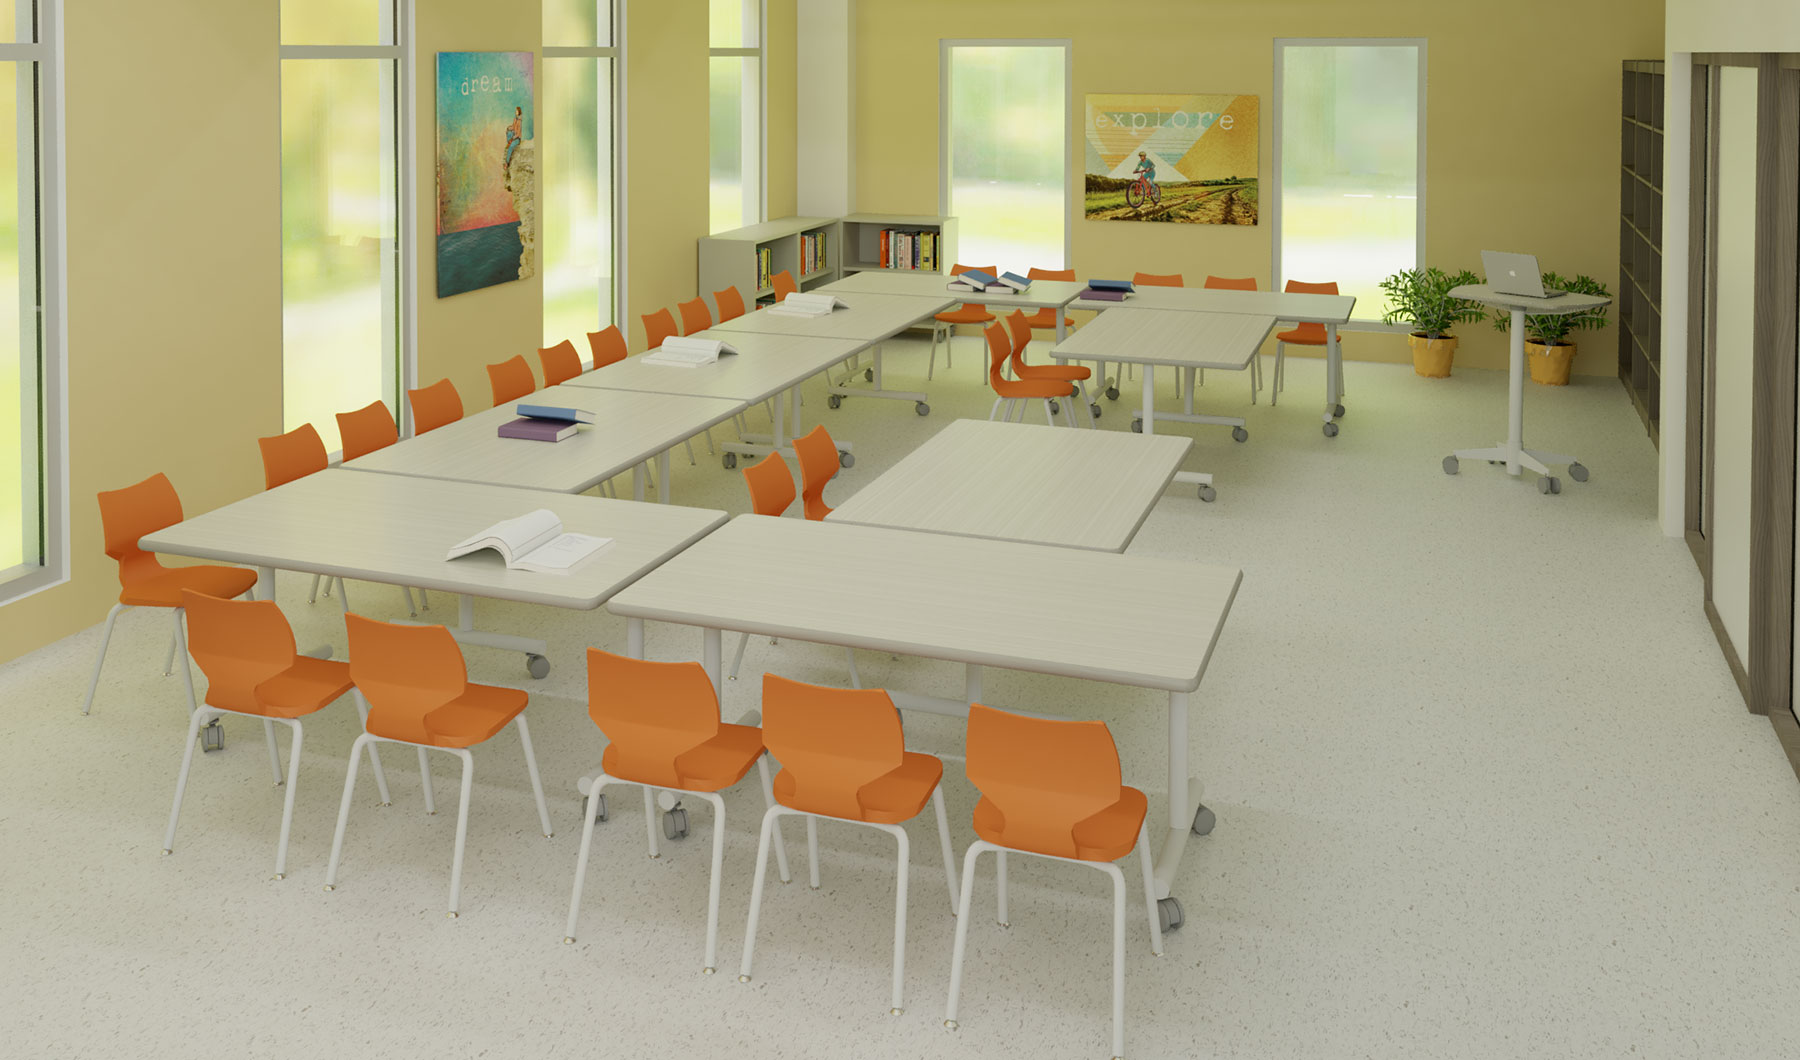 'Iolani Lower School Religion Room